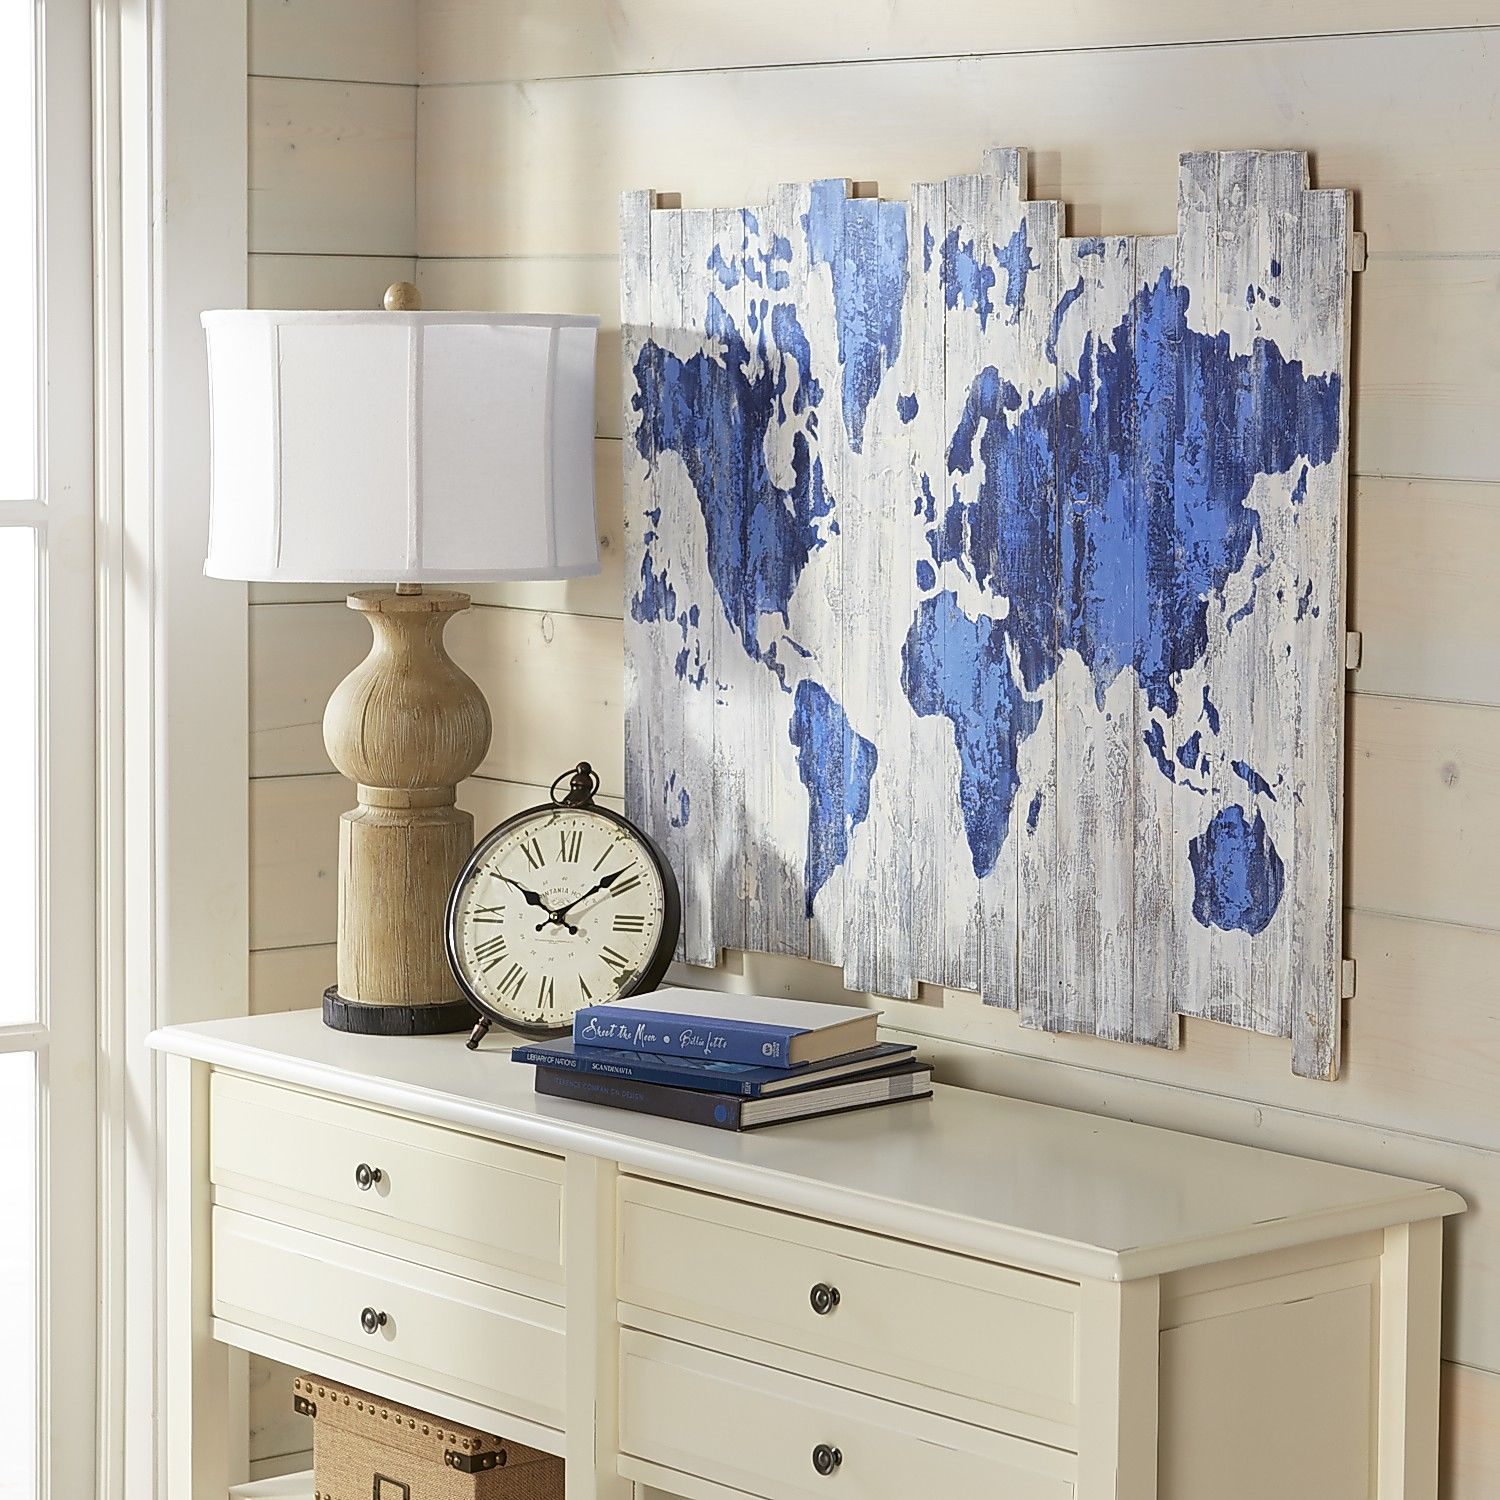 World map on wood planks pier 1 imports diy pinterest wood world map on wood planks pier 1 imports gumiabroncs Images